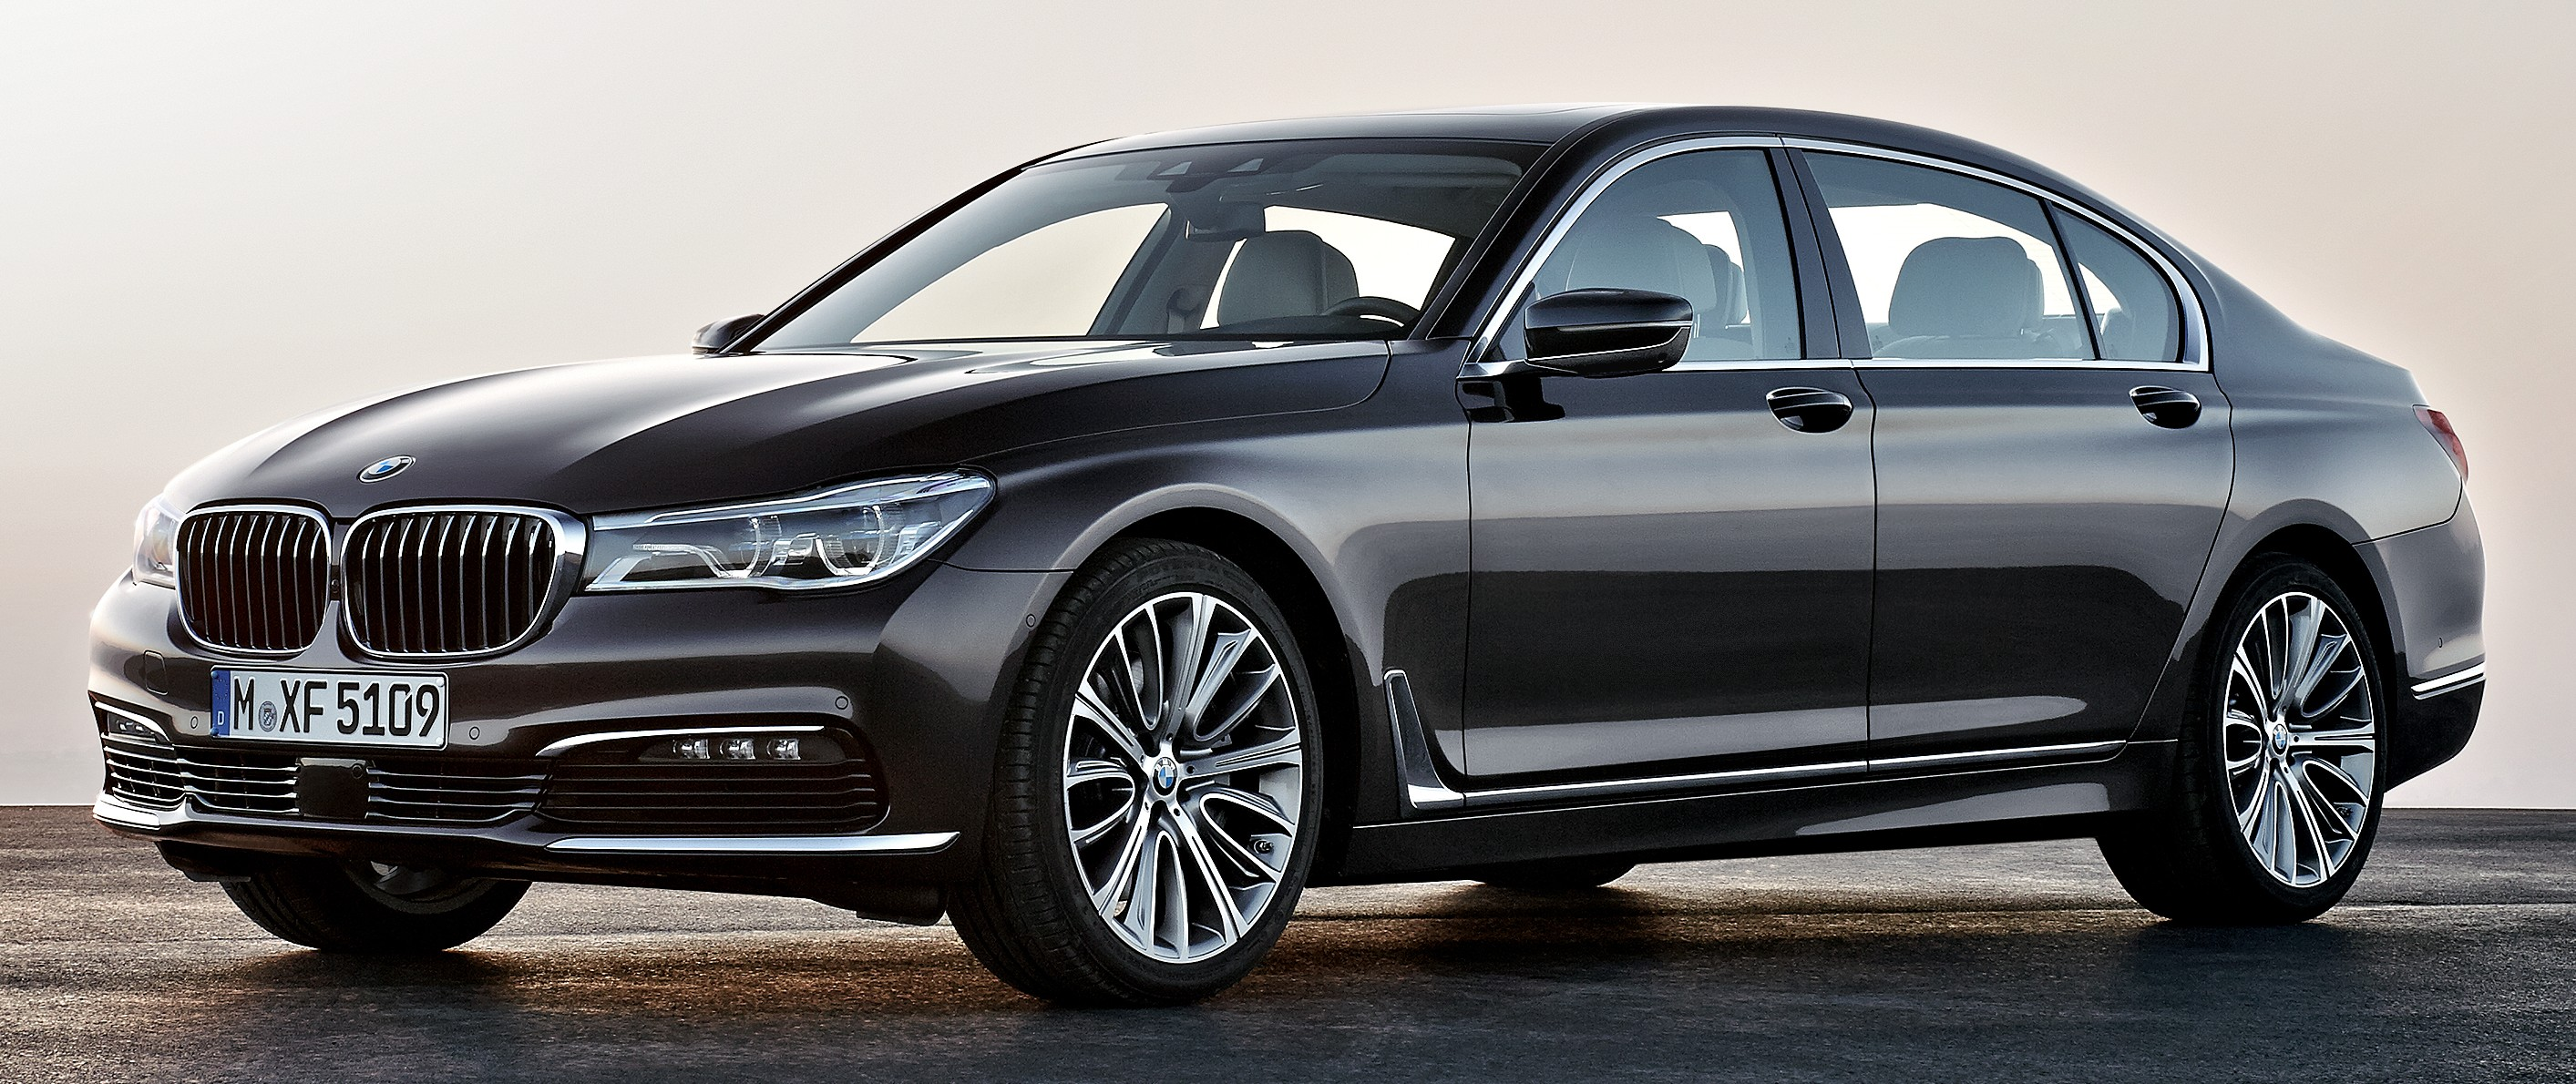 G11g12 Bmw 7 Series Officially Unveiled  Full Details